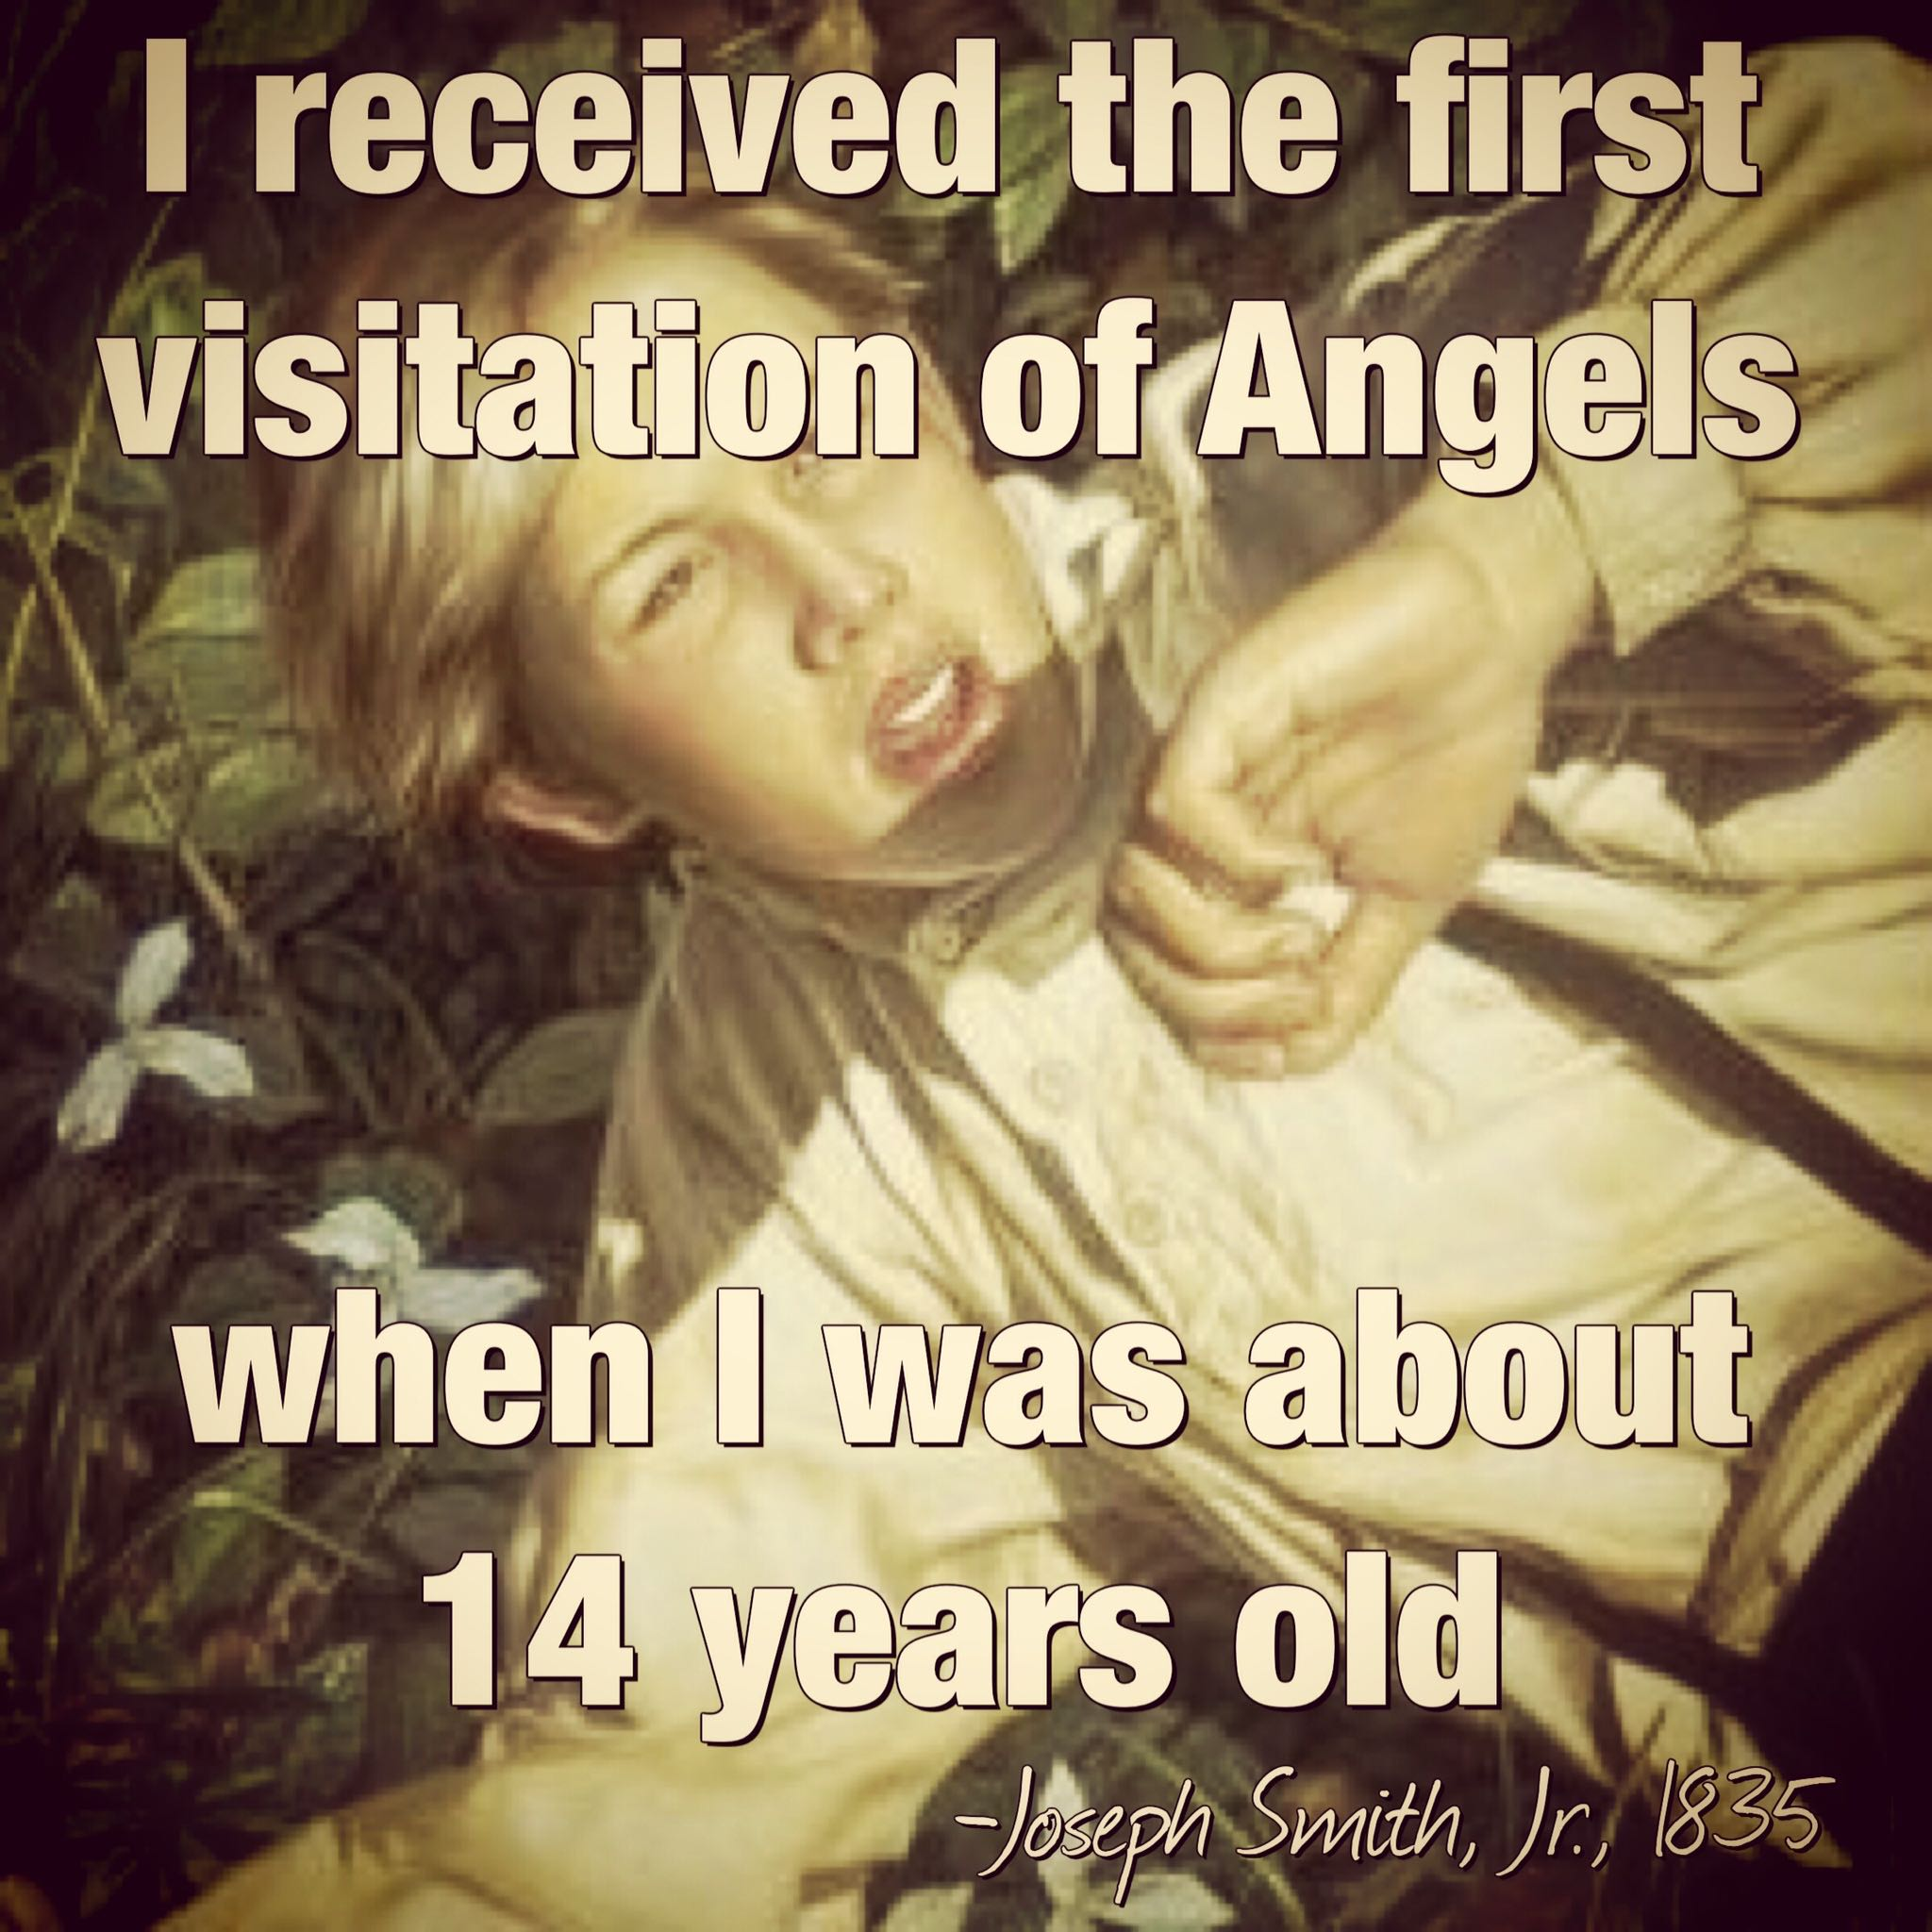 First visitation of angels